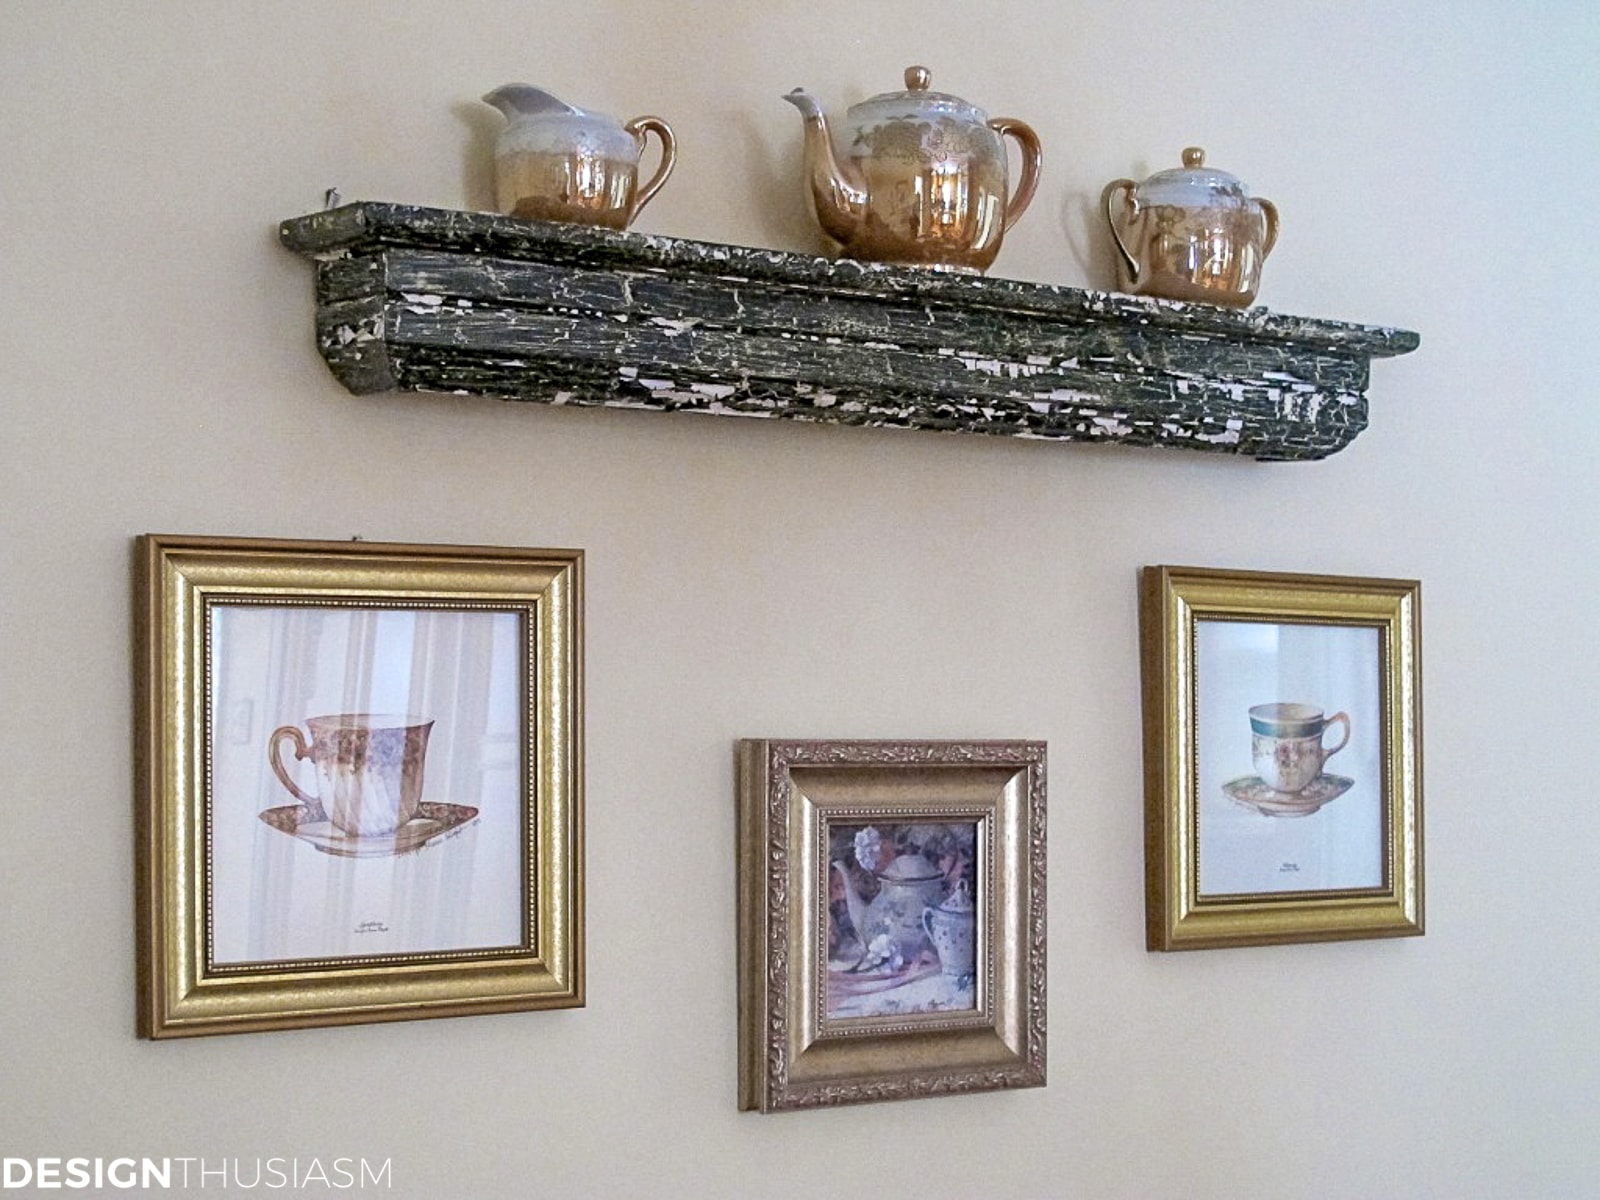 vintage teacups and saucers displayed on a shelf